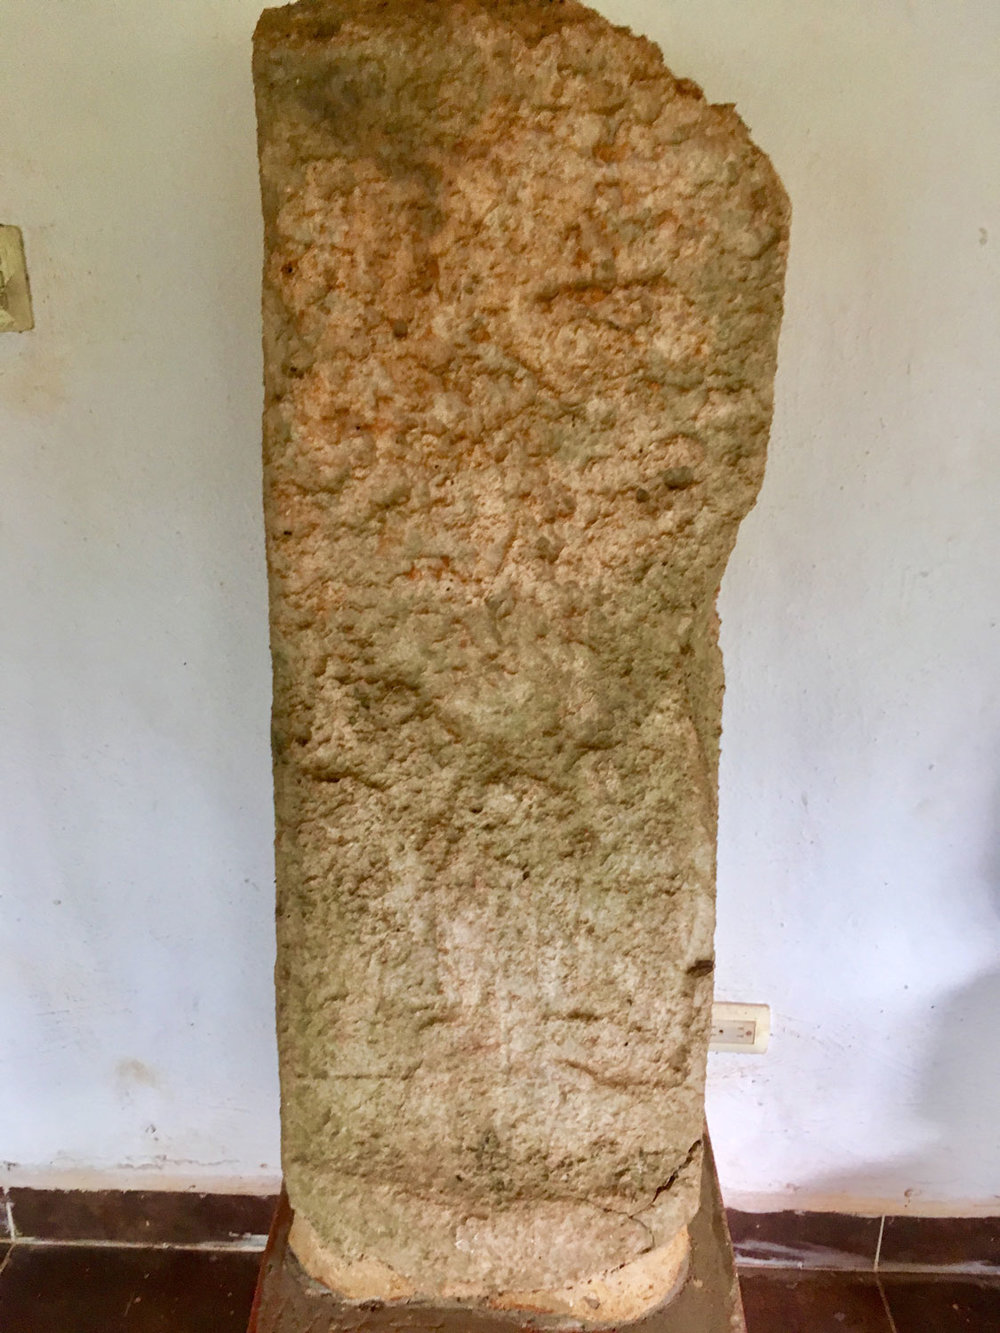 Another stela by the site entrance. A ruler?